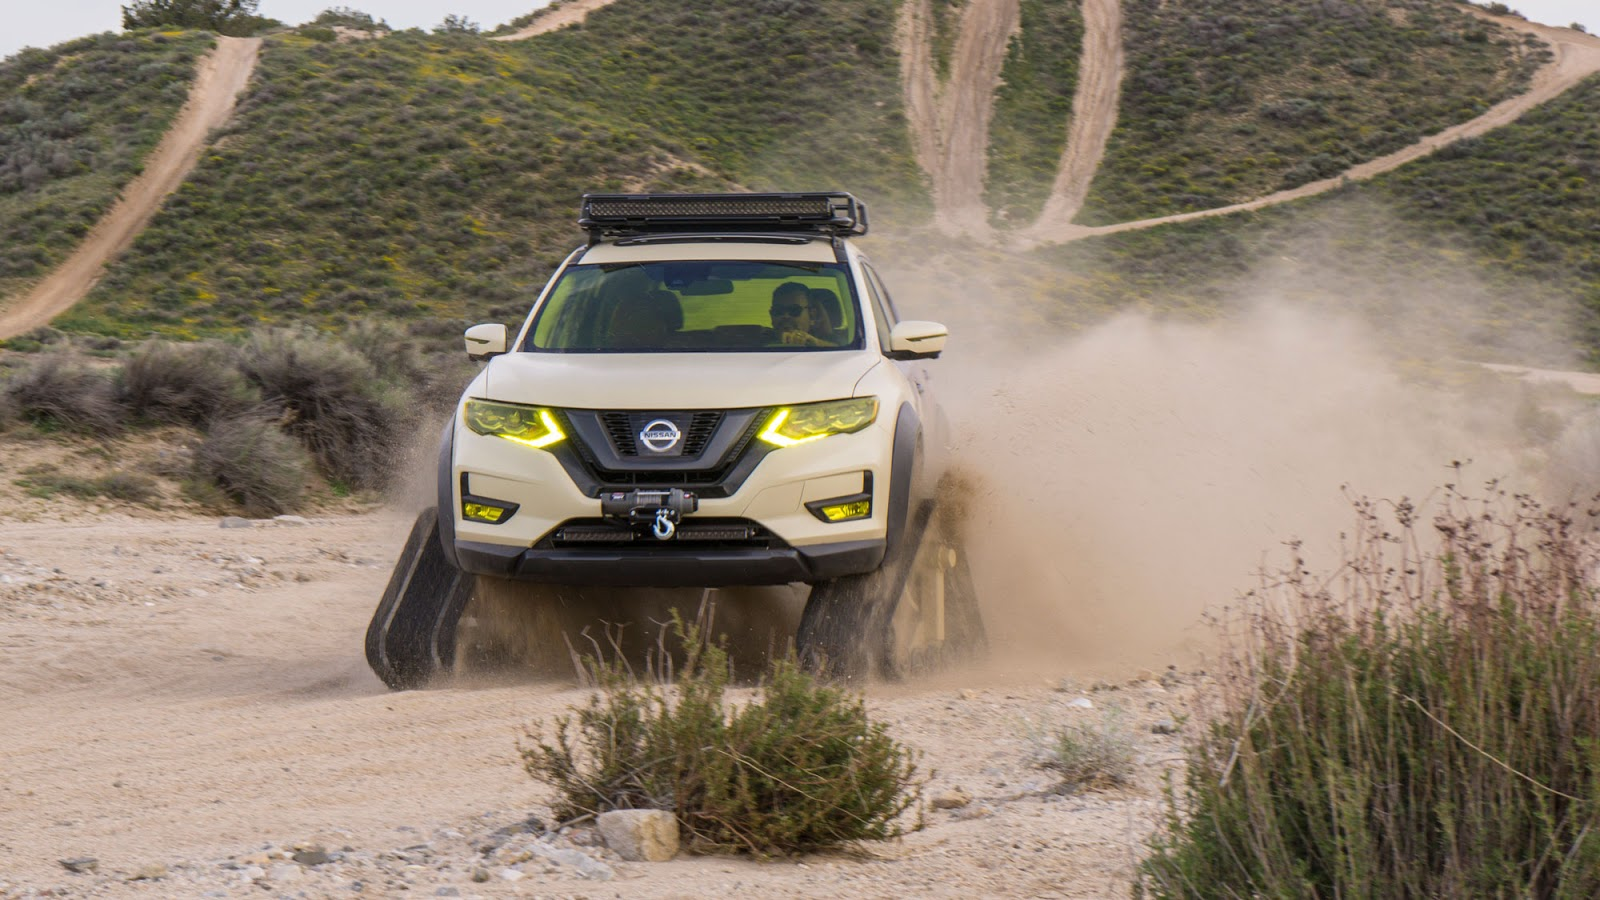 Nissan Rogue Trail Warrior Project 14 rs Nissan Rogue Trail Warrior Project : Το X-trail του... Ράμπο Fun, Nissan, Nissan Rogue, Nissan Rogue Trail Warrior Project, Nissan X-trail, Prototype, SUV